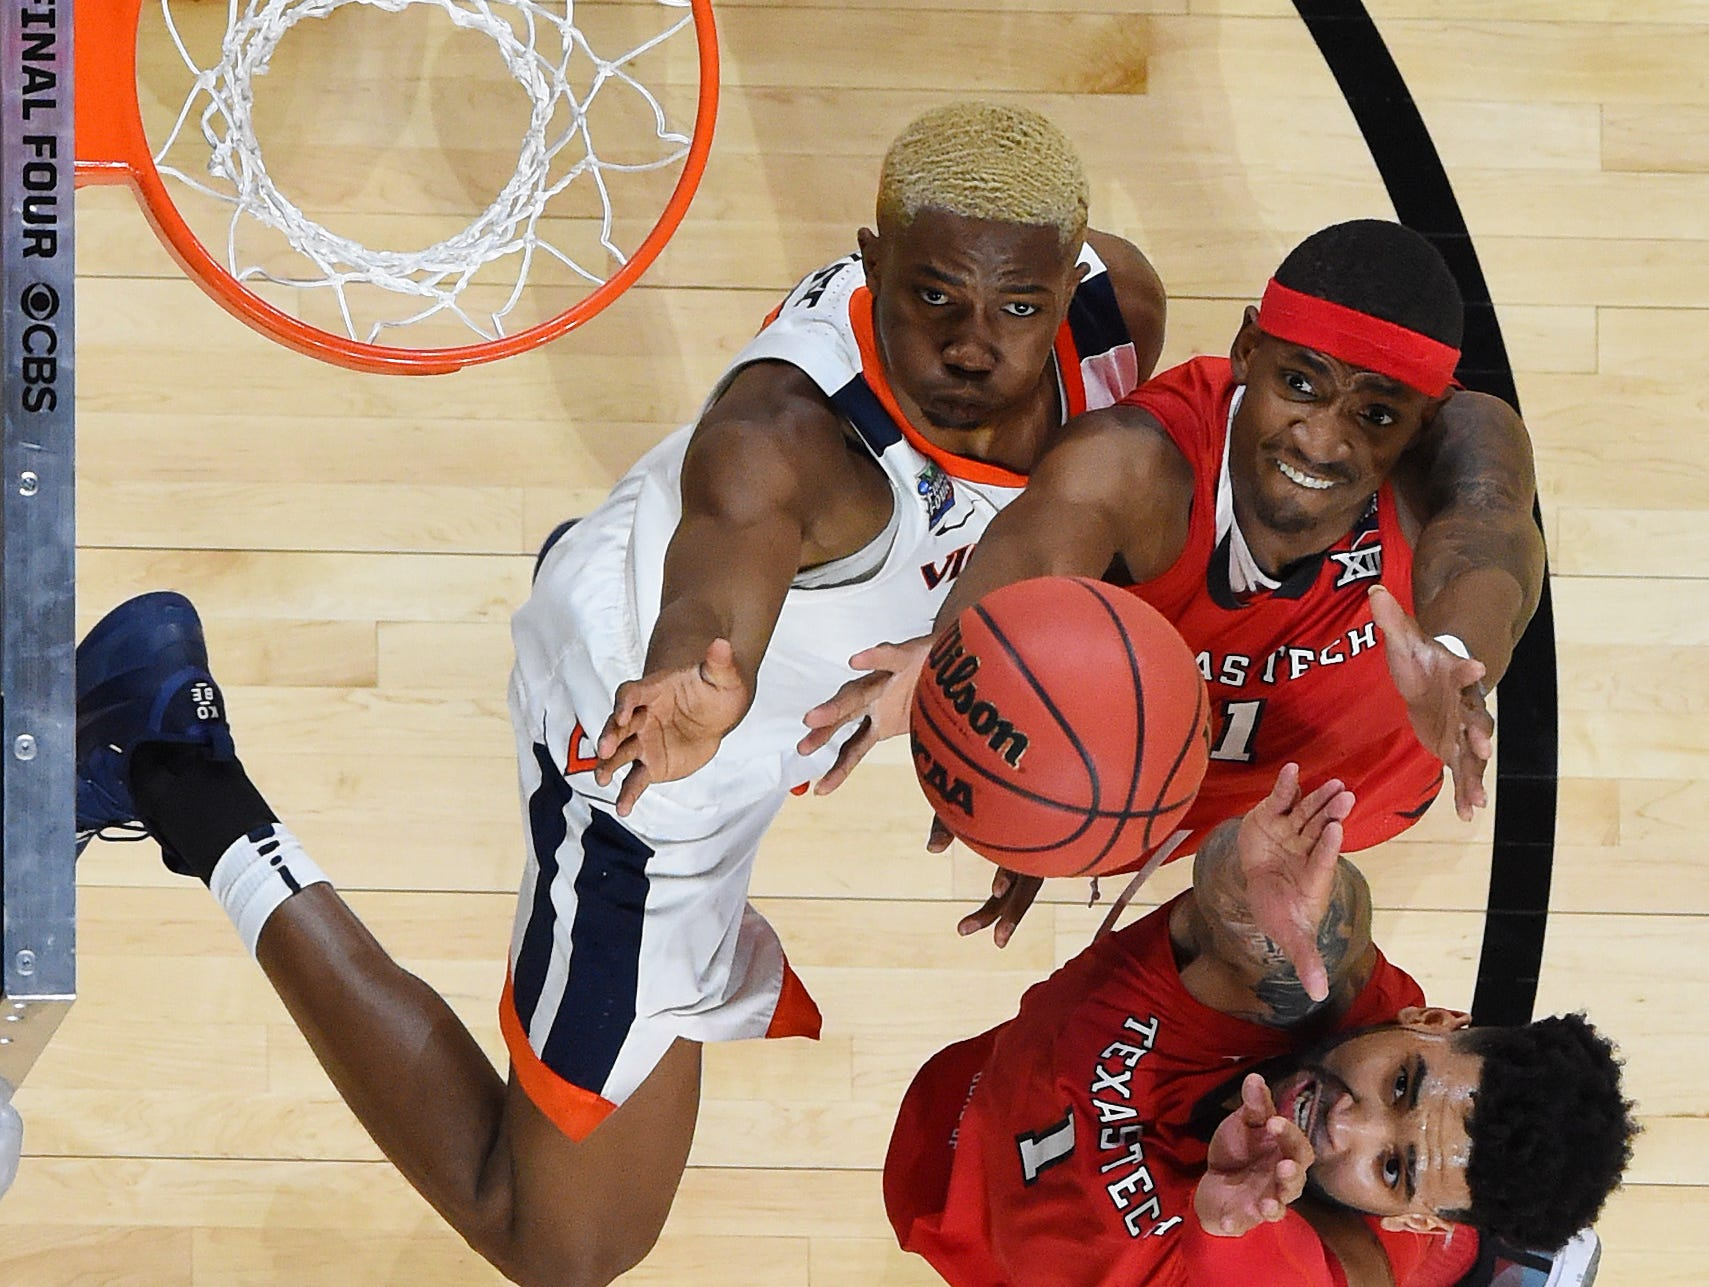 Apr 8, 2019; Minneapolis, MN, USA; Virginia Cavaliers forward Mamadi Diakite (25) and Texas Tech Red Raiders forward Tariq Owens (11) and guard Brandone Francis (1) go up for a rebound during the first half in the championship game of the 2019 men's Final Four at US Bank Stadium. Mandatory Credit: Bob Donnan-USA TODAY Sports